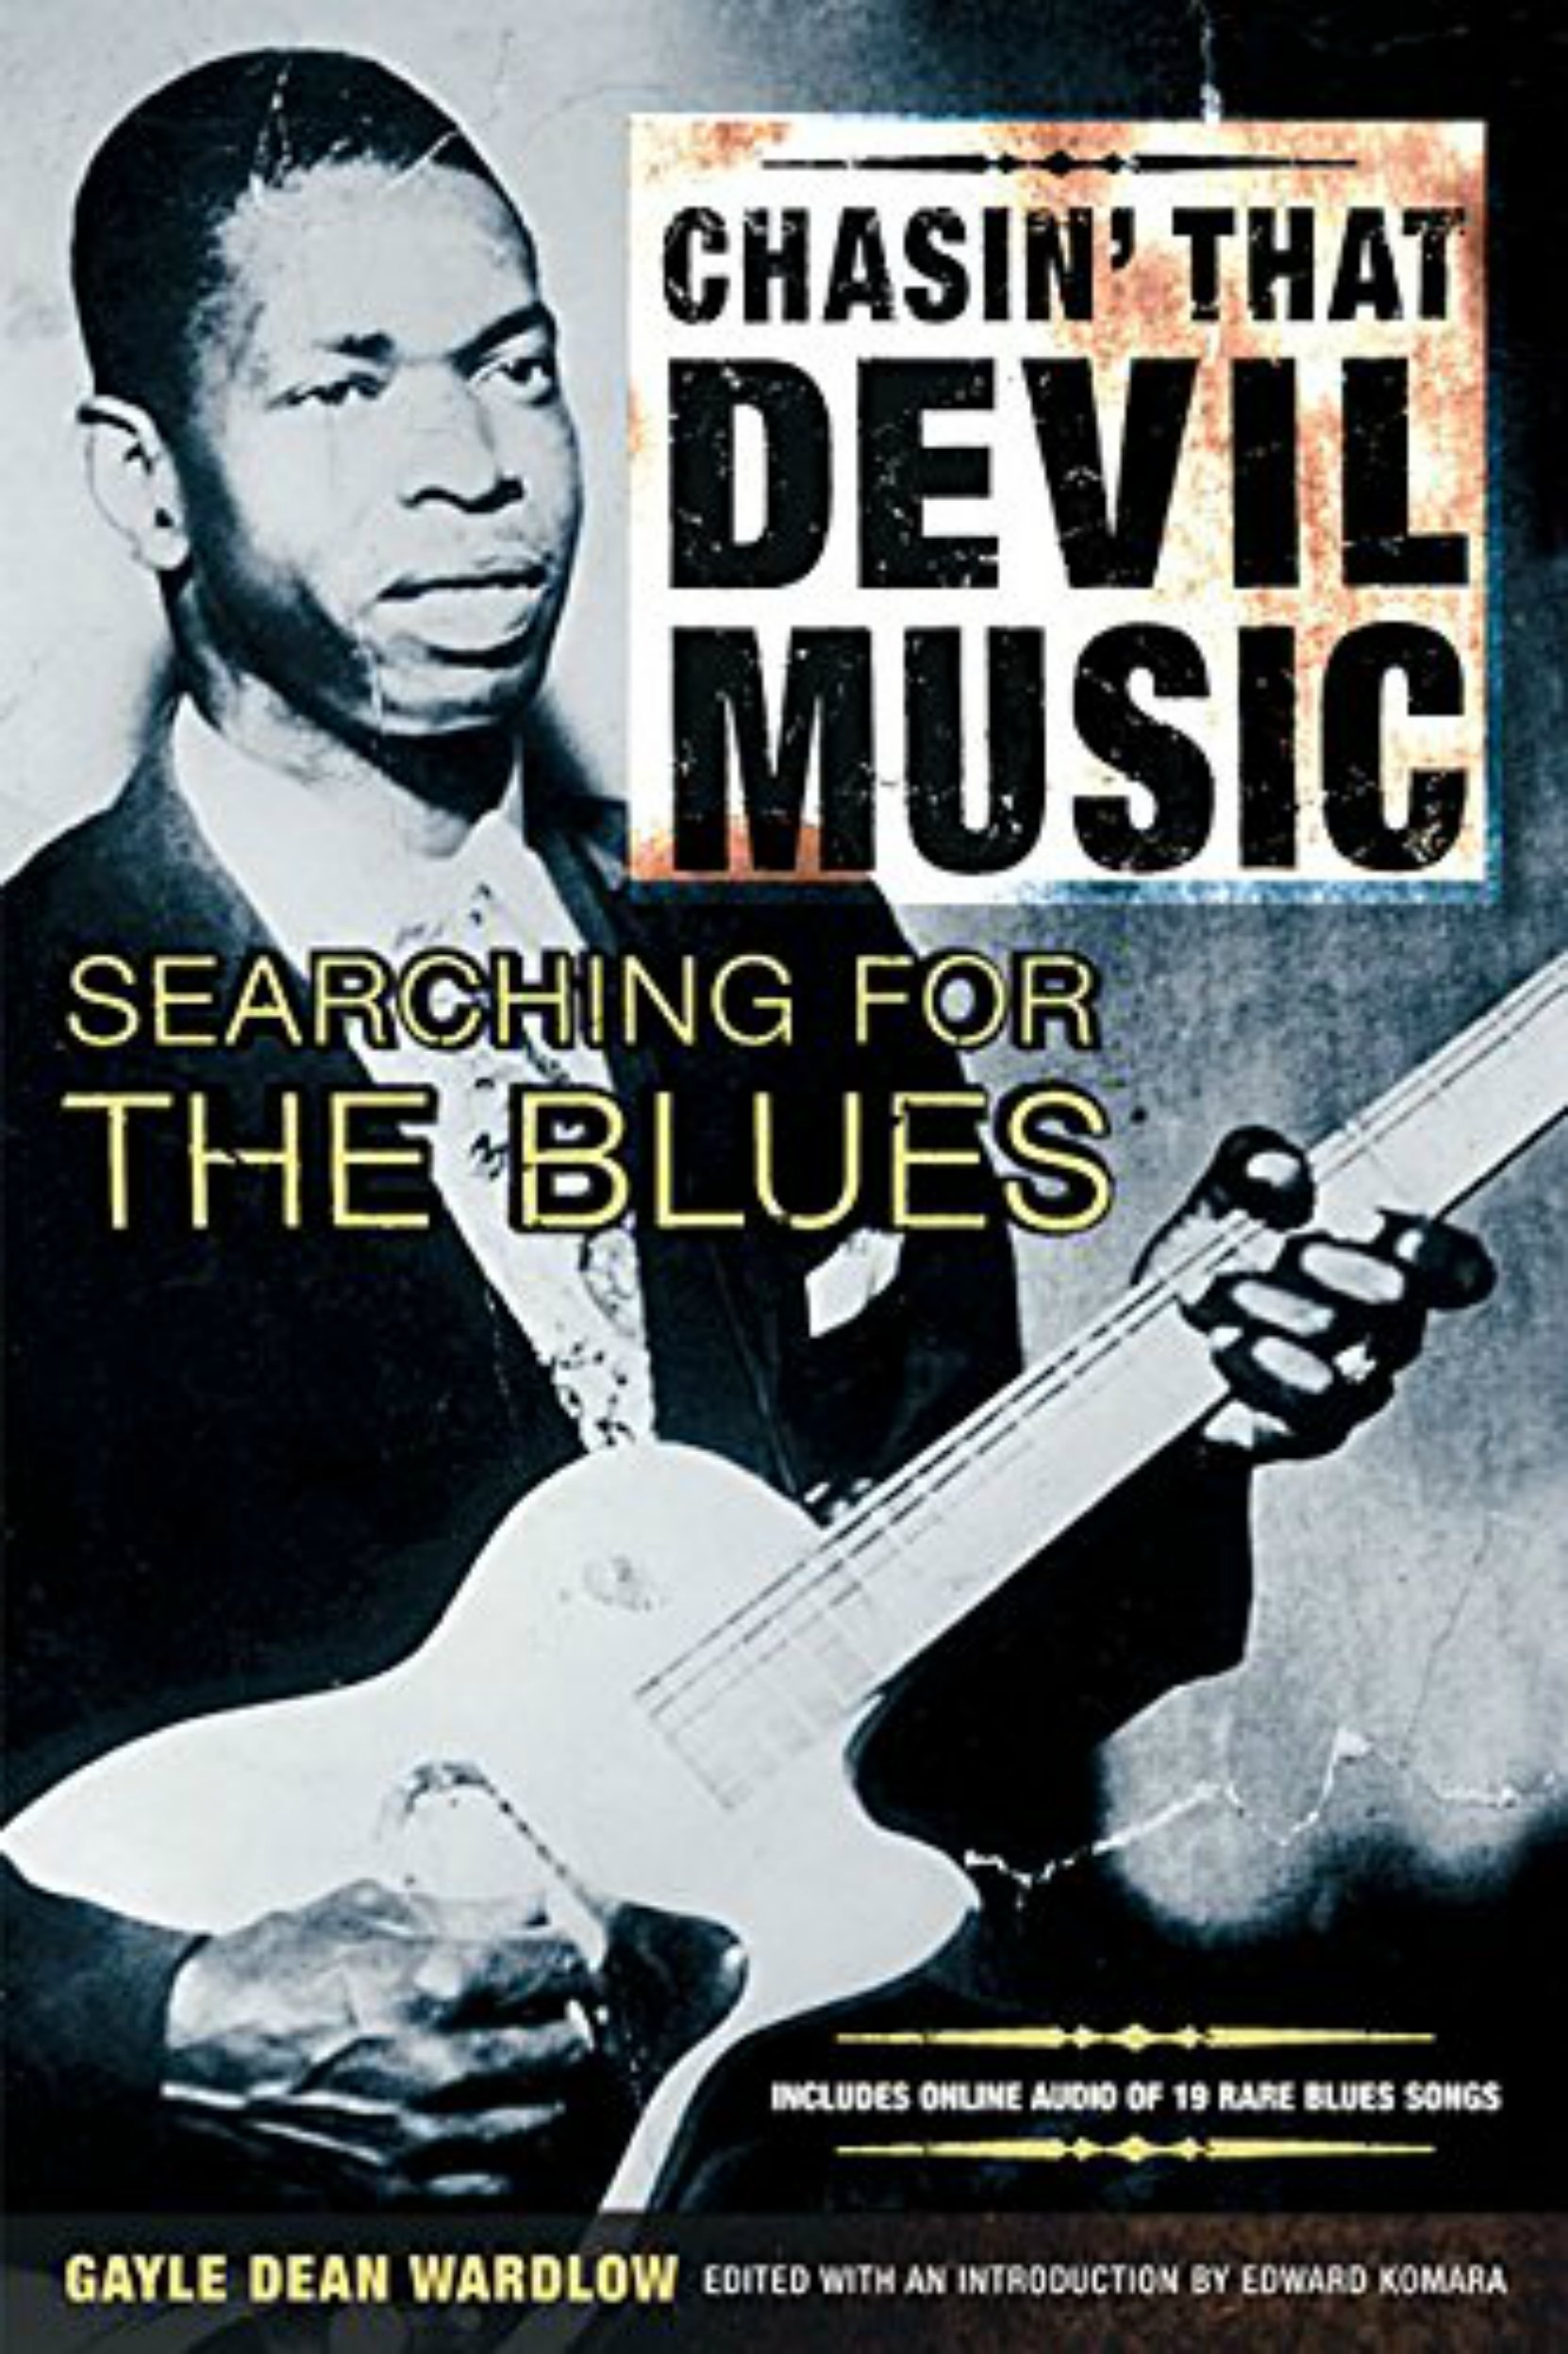 Book cover, Chasin' That Devil Music - Searching For The Blues, by Gayle Dean Wardlow